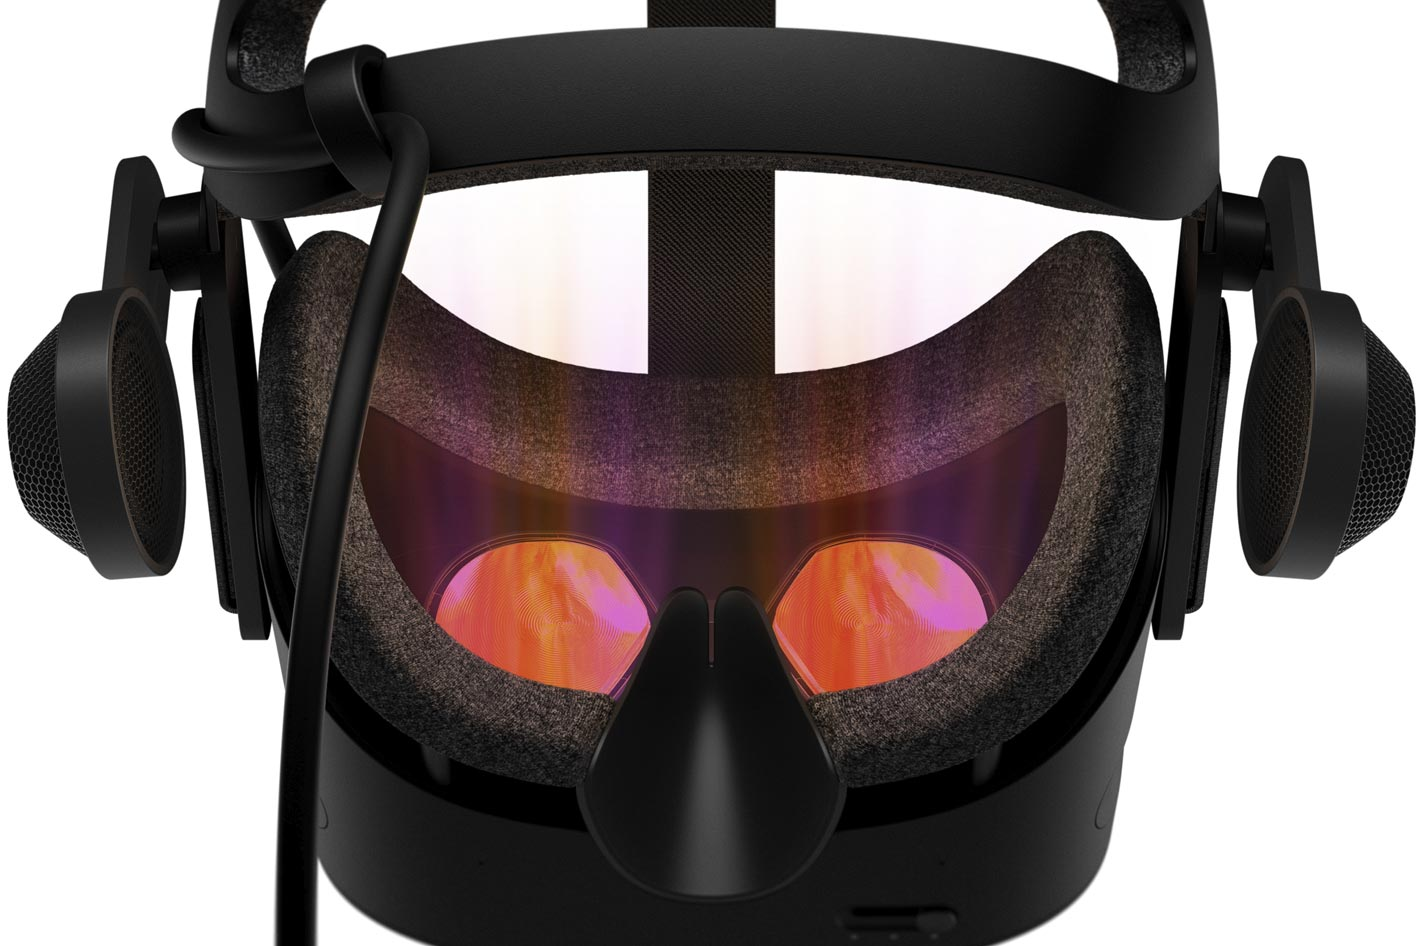 HP Reverb G2: a great Virtual Reality headset… when it works